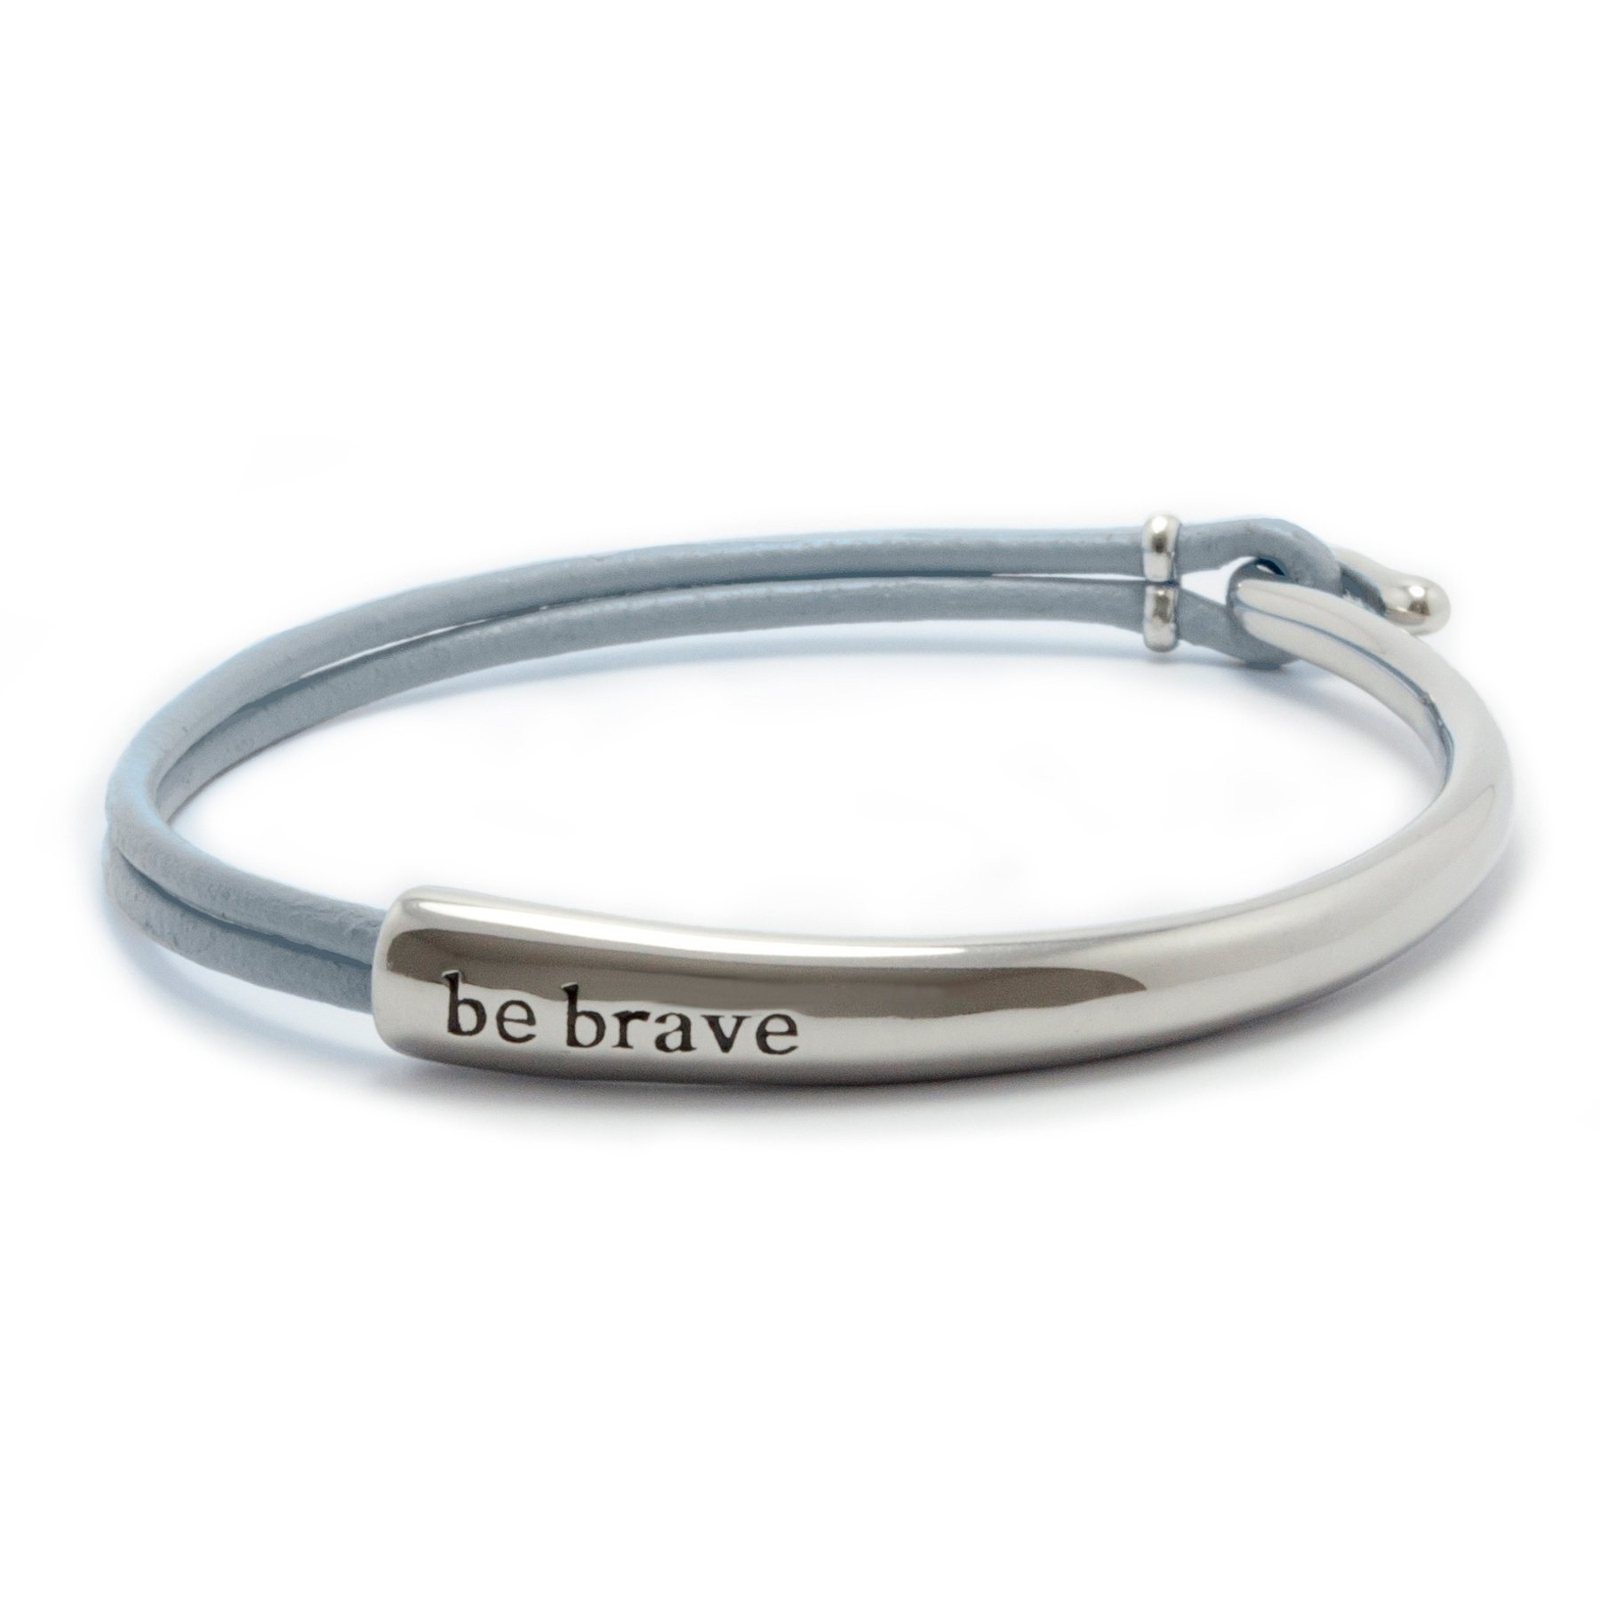 Or by Shopping the beautiful products at Bravelets    https://www.bravelets.com/collections/BeBraveForBE